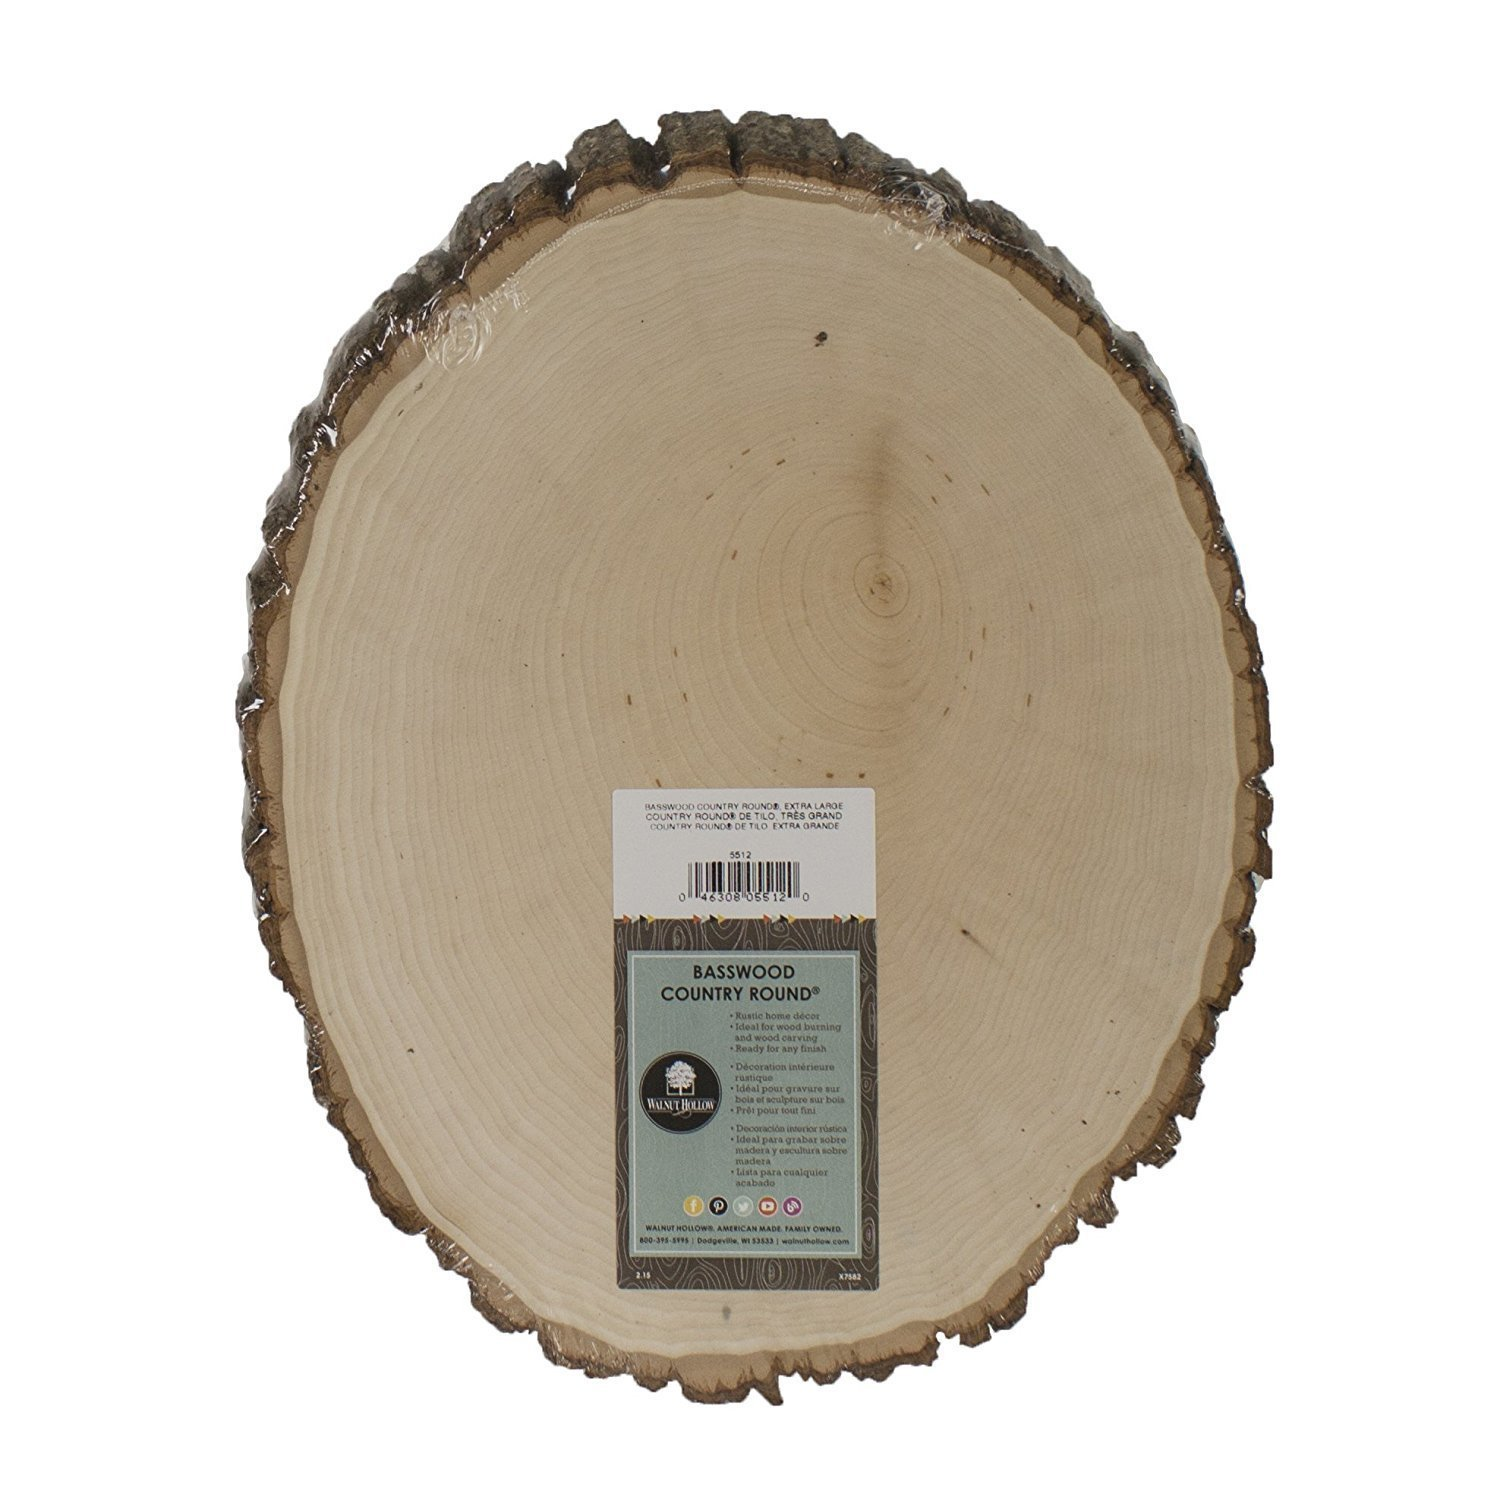 "Extra Large Basswood Rustic Country Round - 11"" to 13"" Wide"